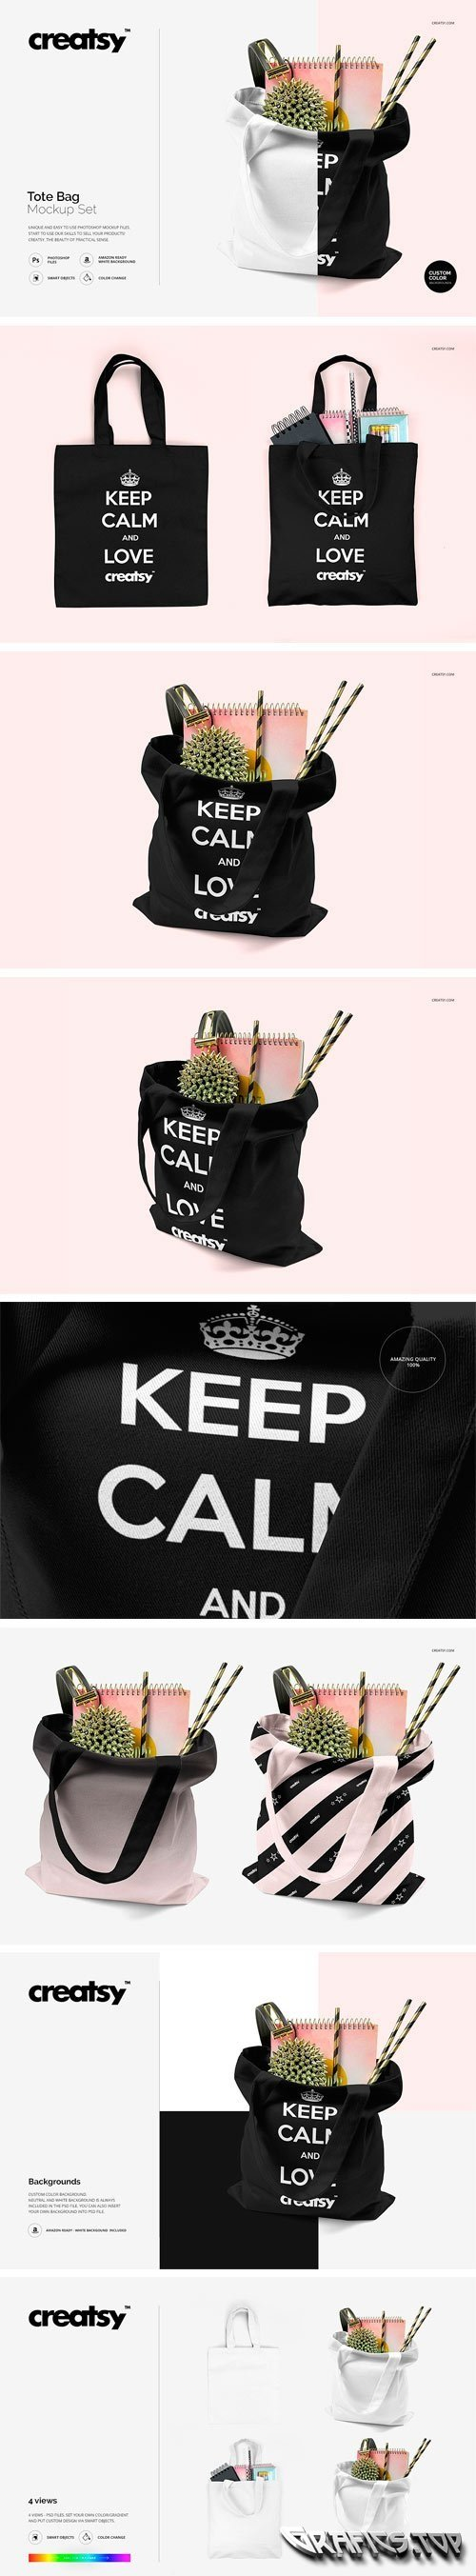 Tote Bag Mockup Set - 1559630